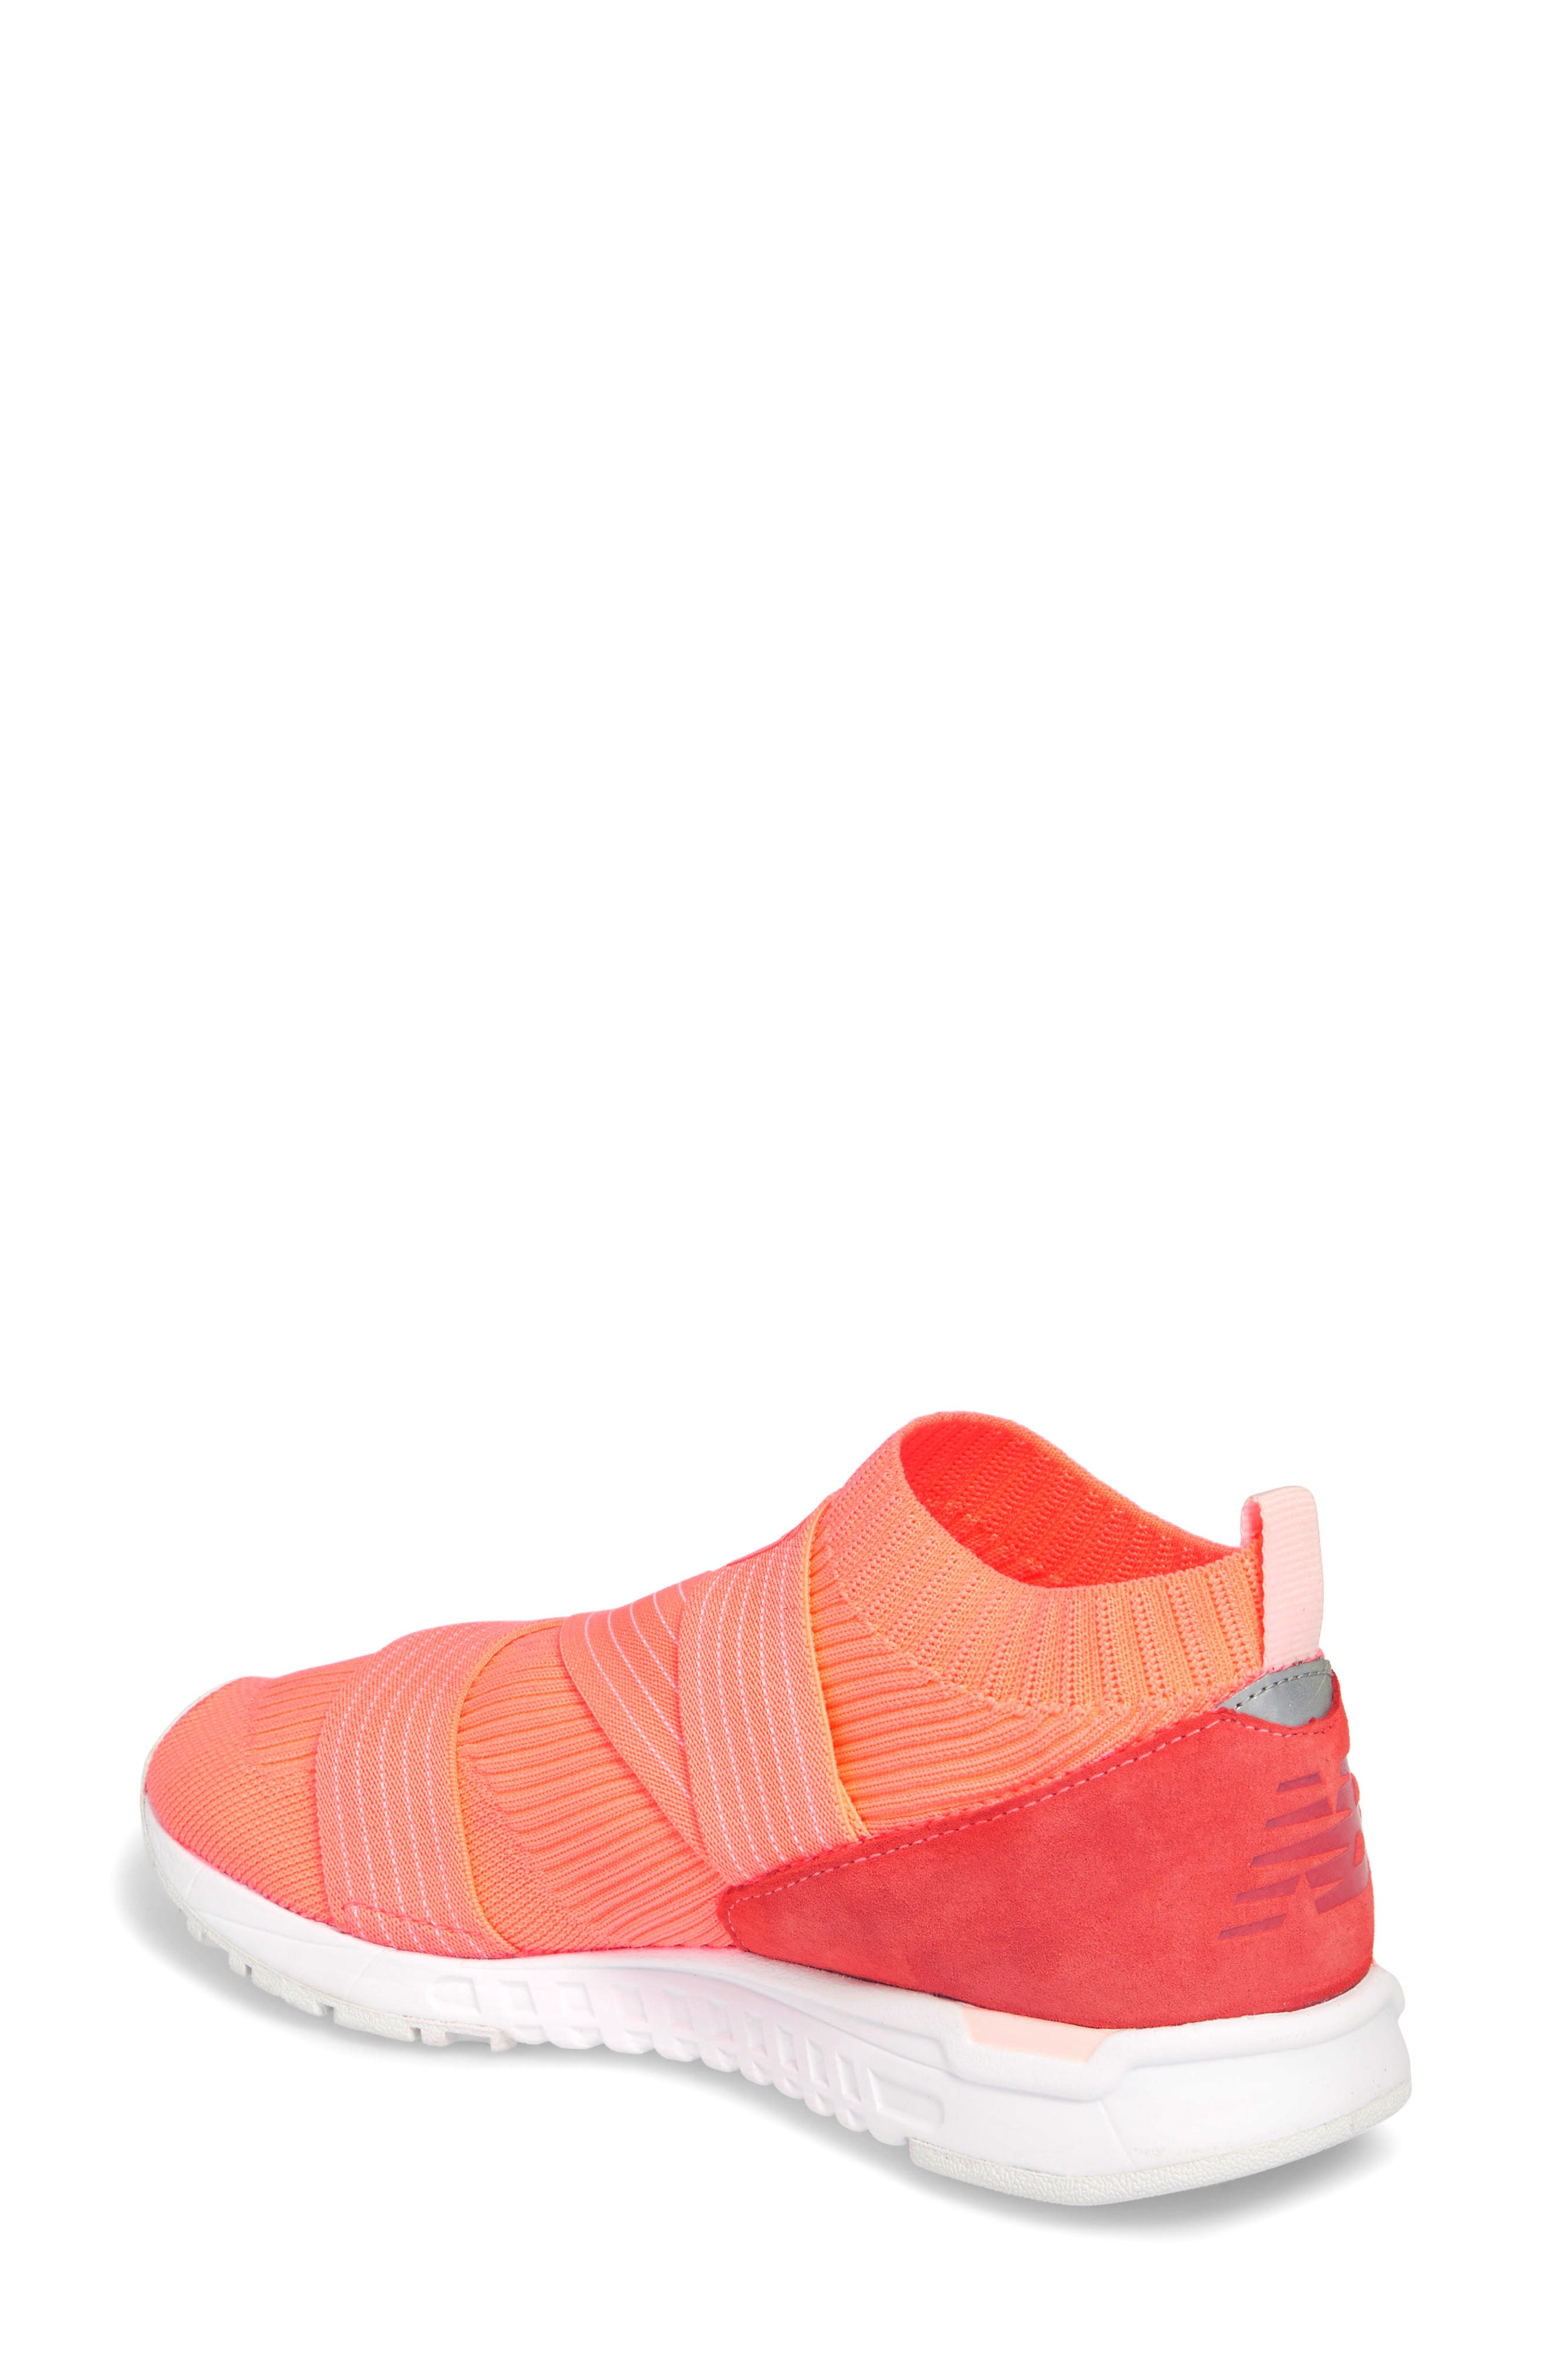 247 Knit Sneaker,                             Alternate thumbnail 2, color,                             Fiji